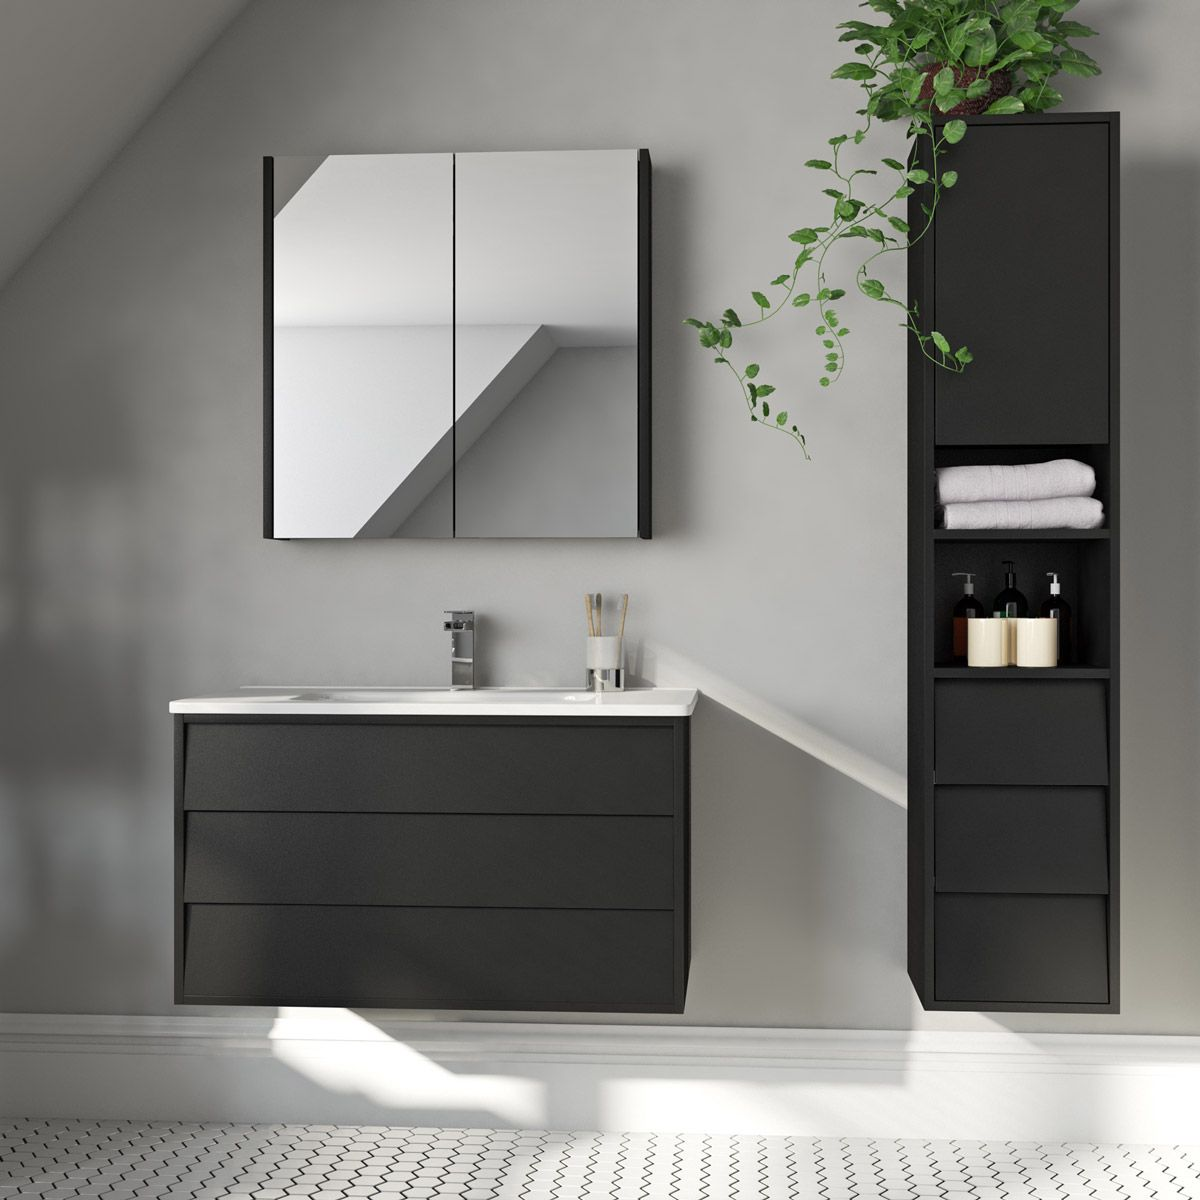 Mode Cooper Anthracite Black Furniture Package With Wall Hung Vanity Unit 800mm Wall Hung Vanity Furniture Packages Vanity Units